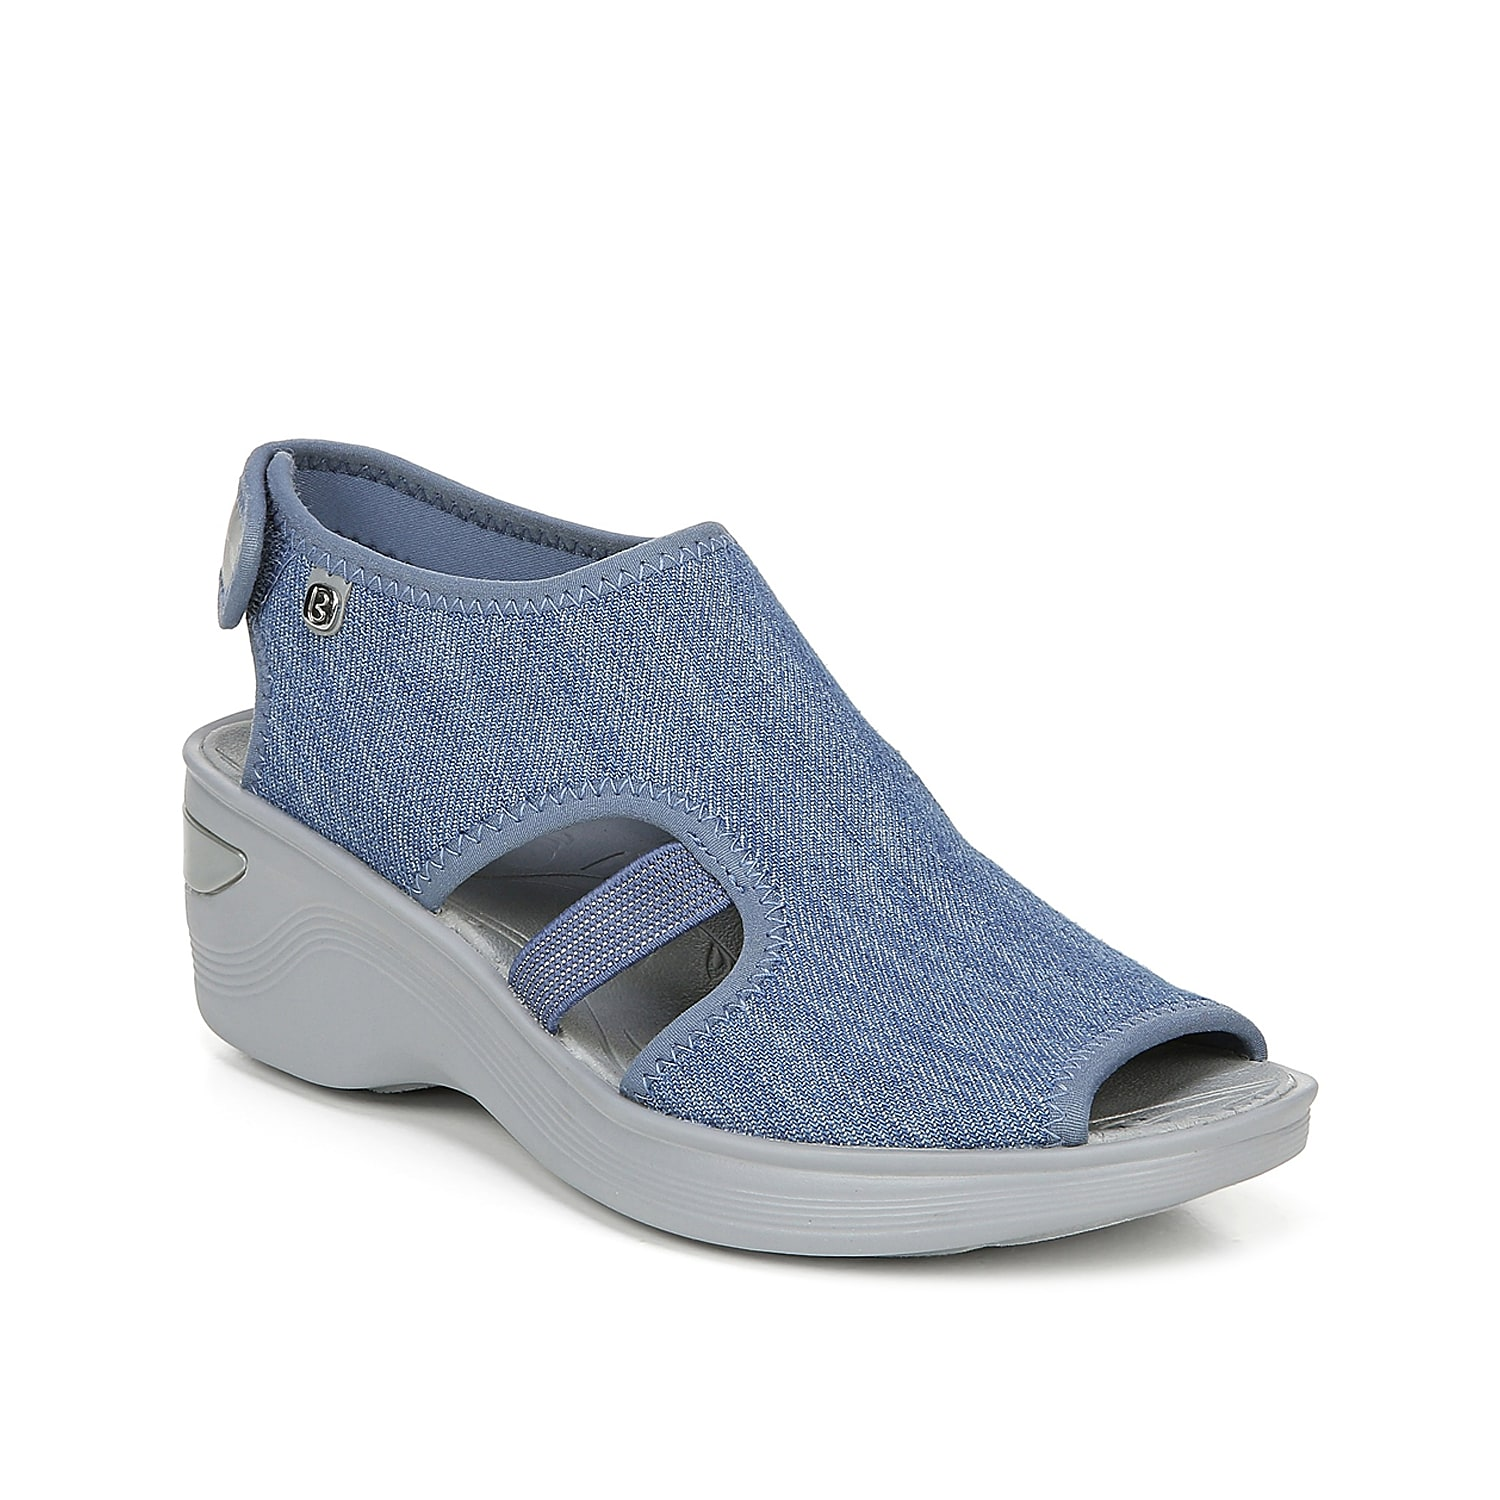 Take your shoe collection to new heights with the Dream wedge sandal from BZees. This silhouette is fashioned with chambray upper and a chunky midsole that will go great with anything from playful dresses to jeans and an easy tee!